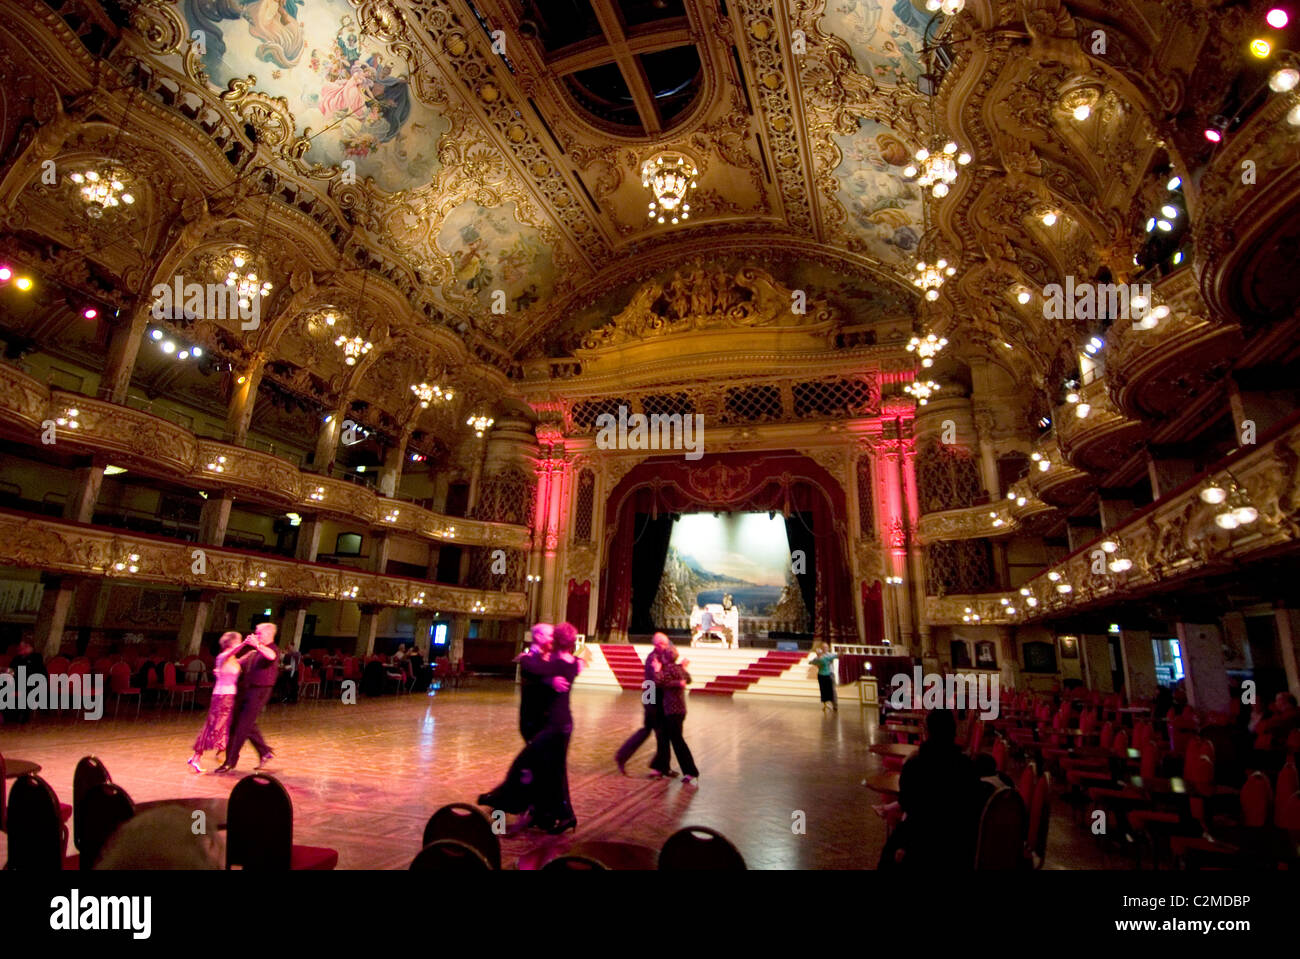 The Tower Ballroom, opened as a roller skating rink but changed to a dance venue in the 1920s, Blackpool, England Stock Photo